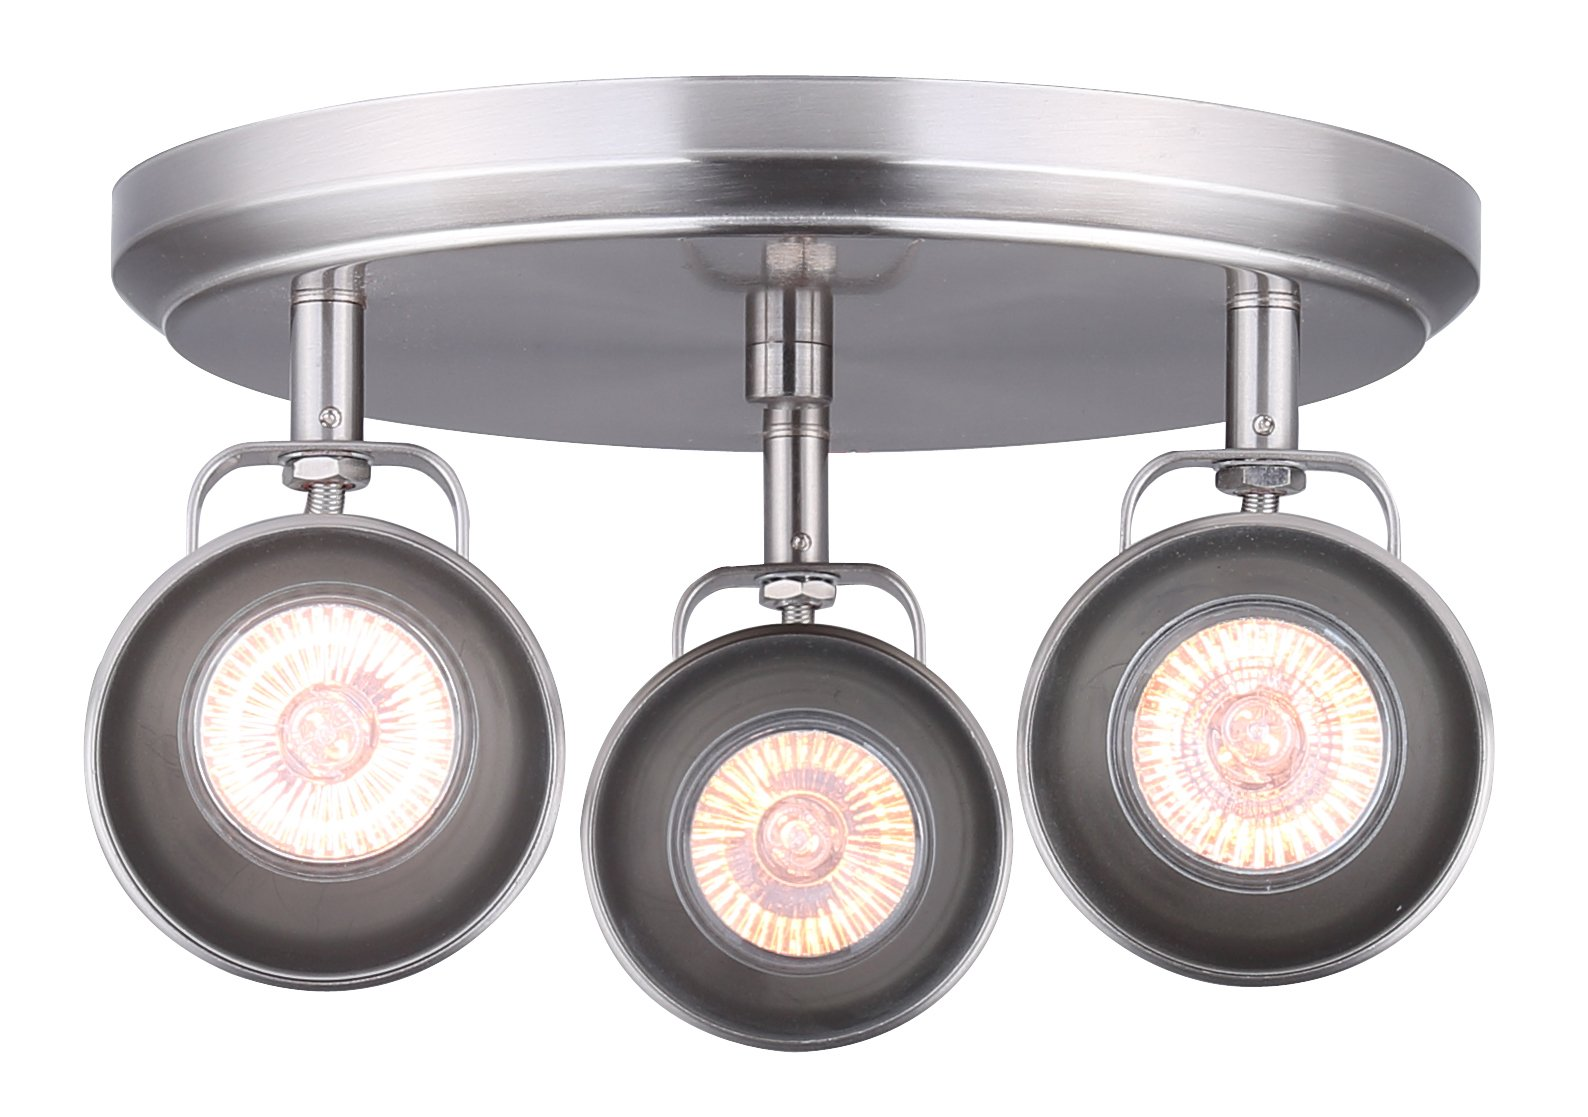 CANARM ICW622A03BN10 LTD Polo 3 Light Ceiling/Wall, Brushed Nickel with Adjustable Heads